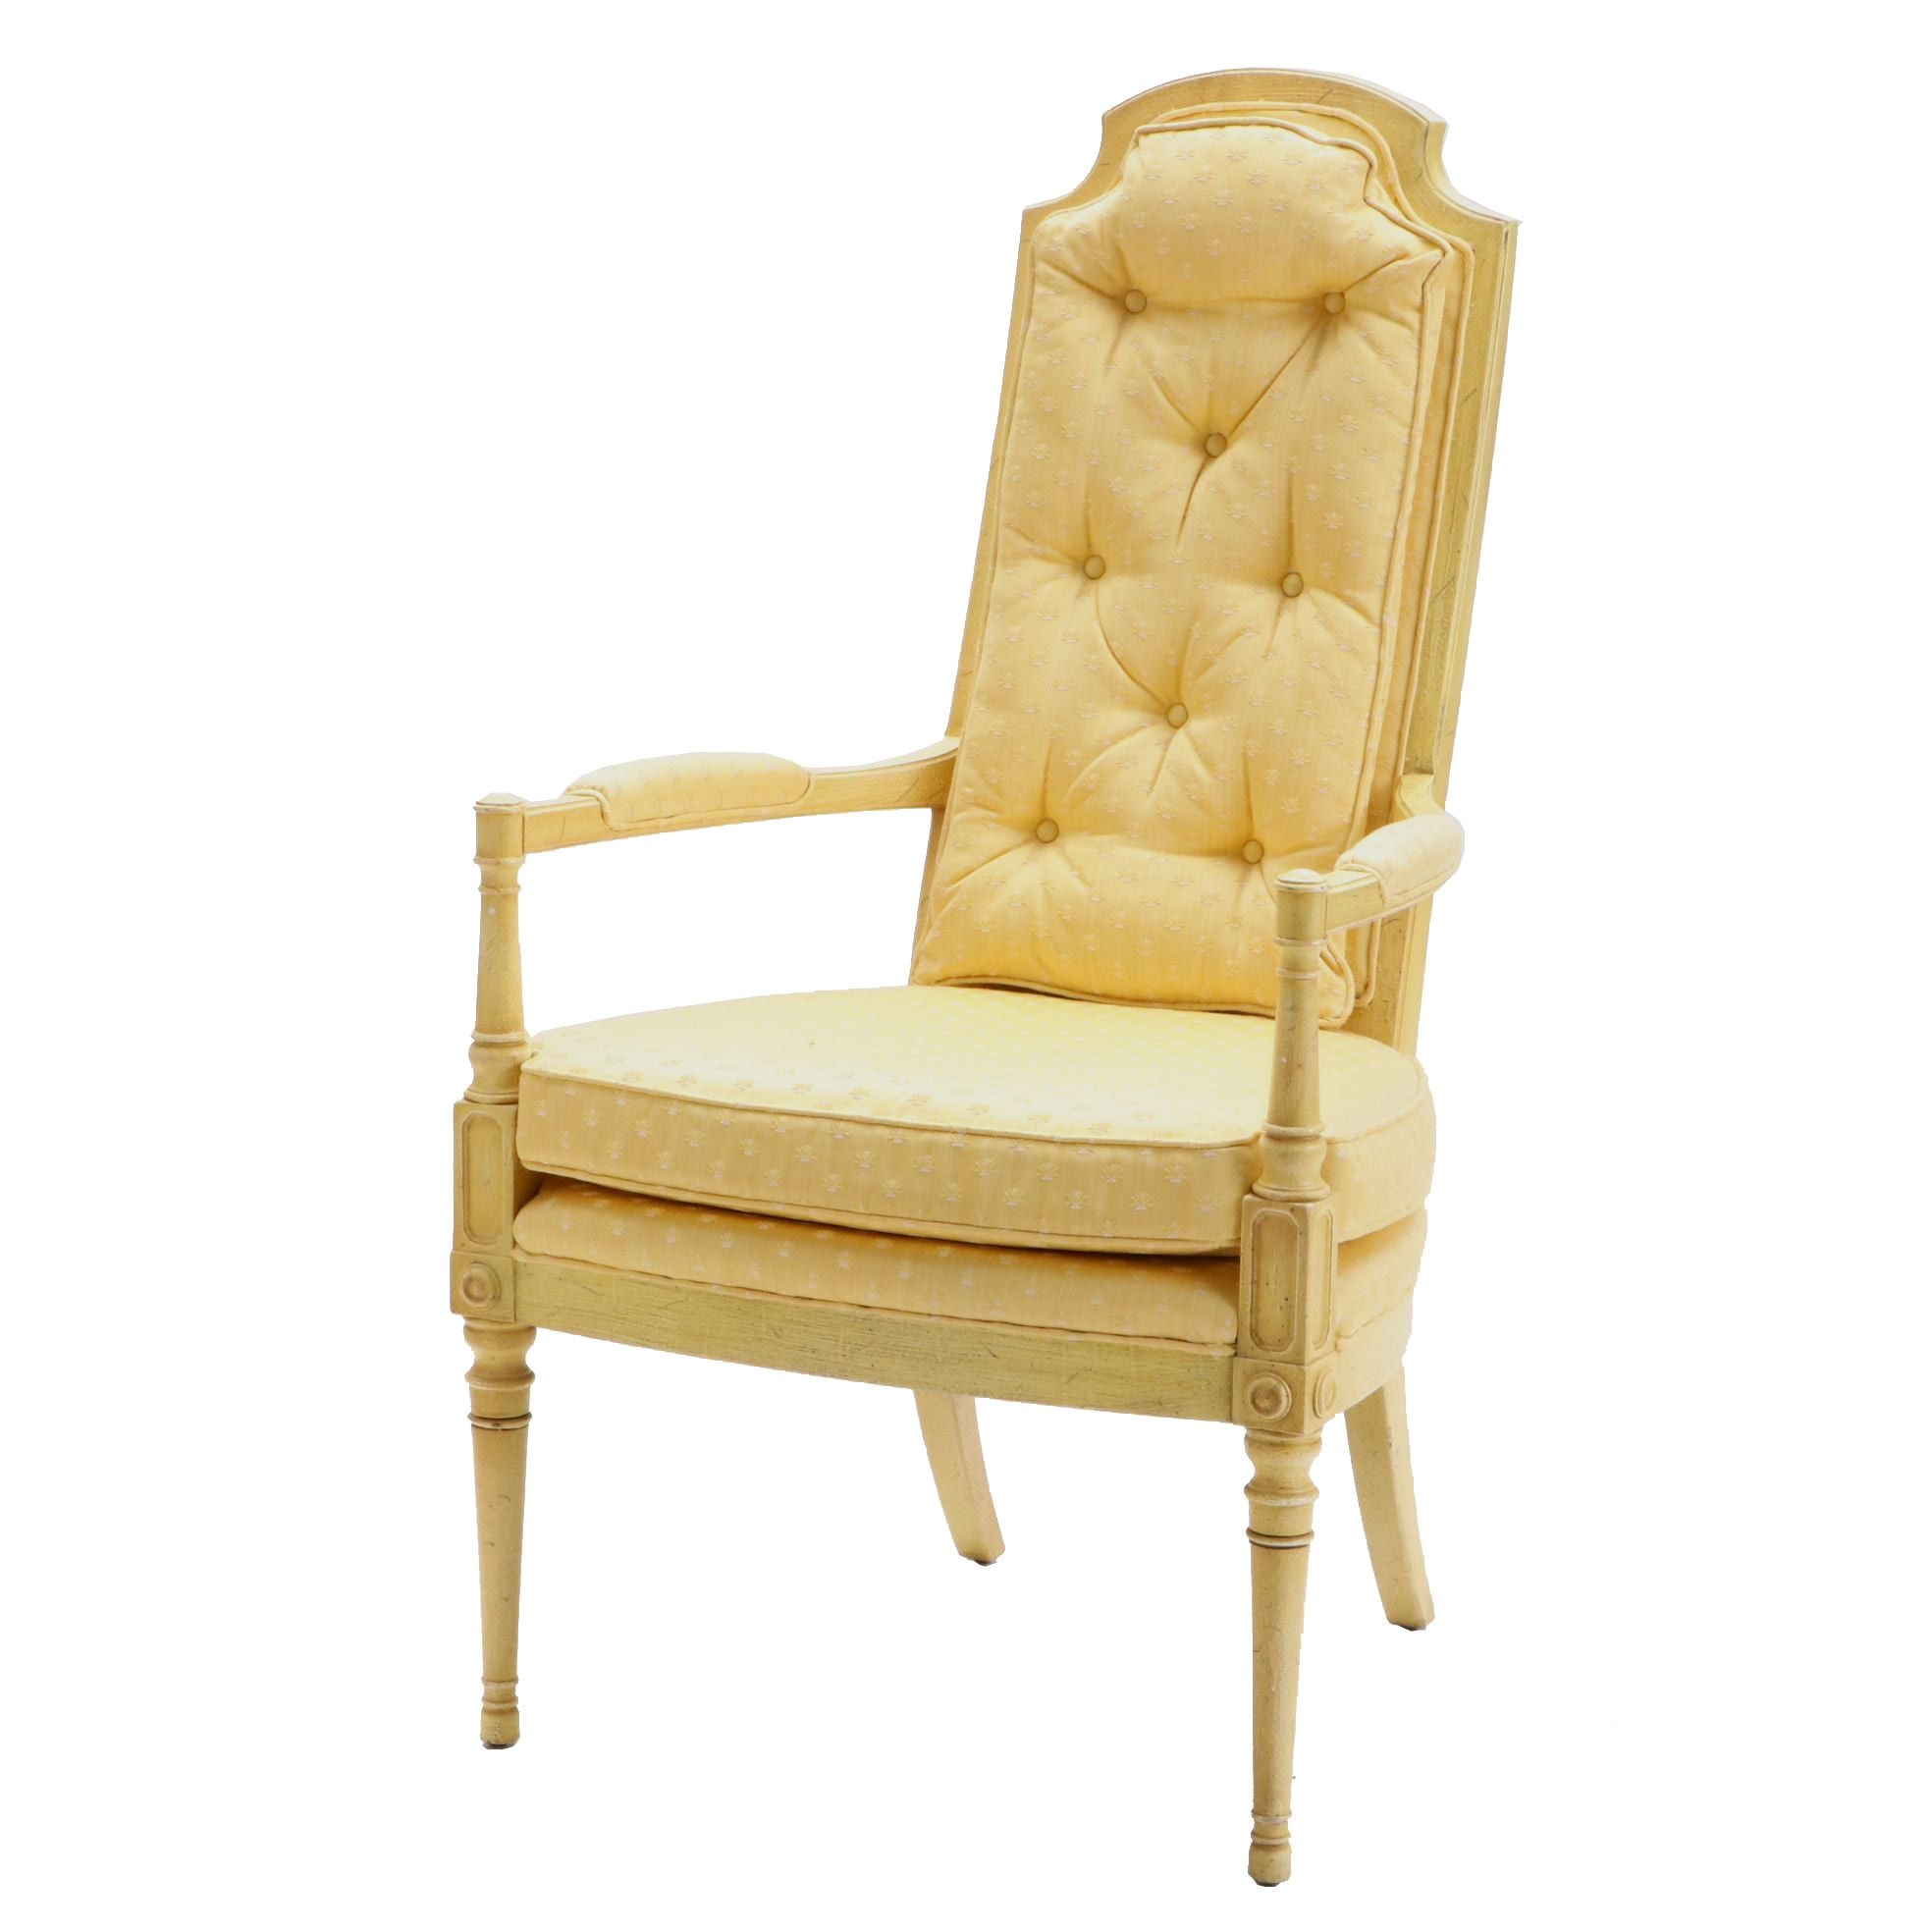 Louis XVI Style Upholstered Arm Chair by Drexel Heritage, 20th Century